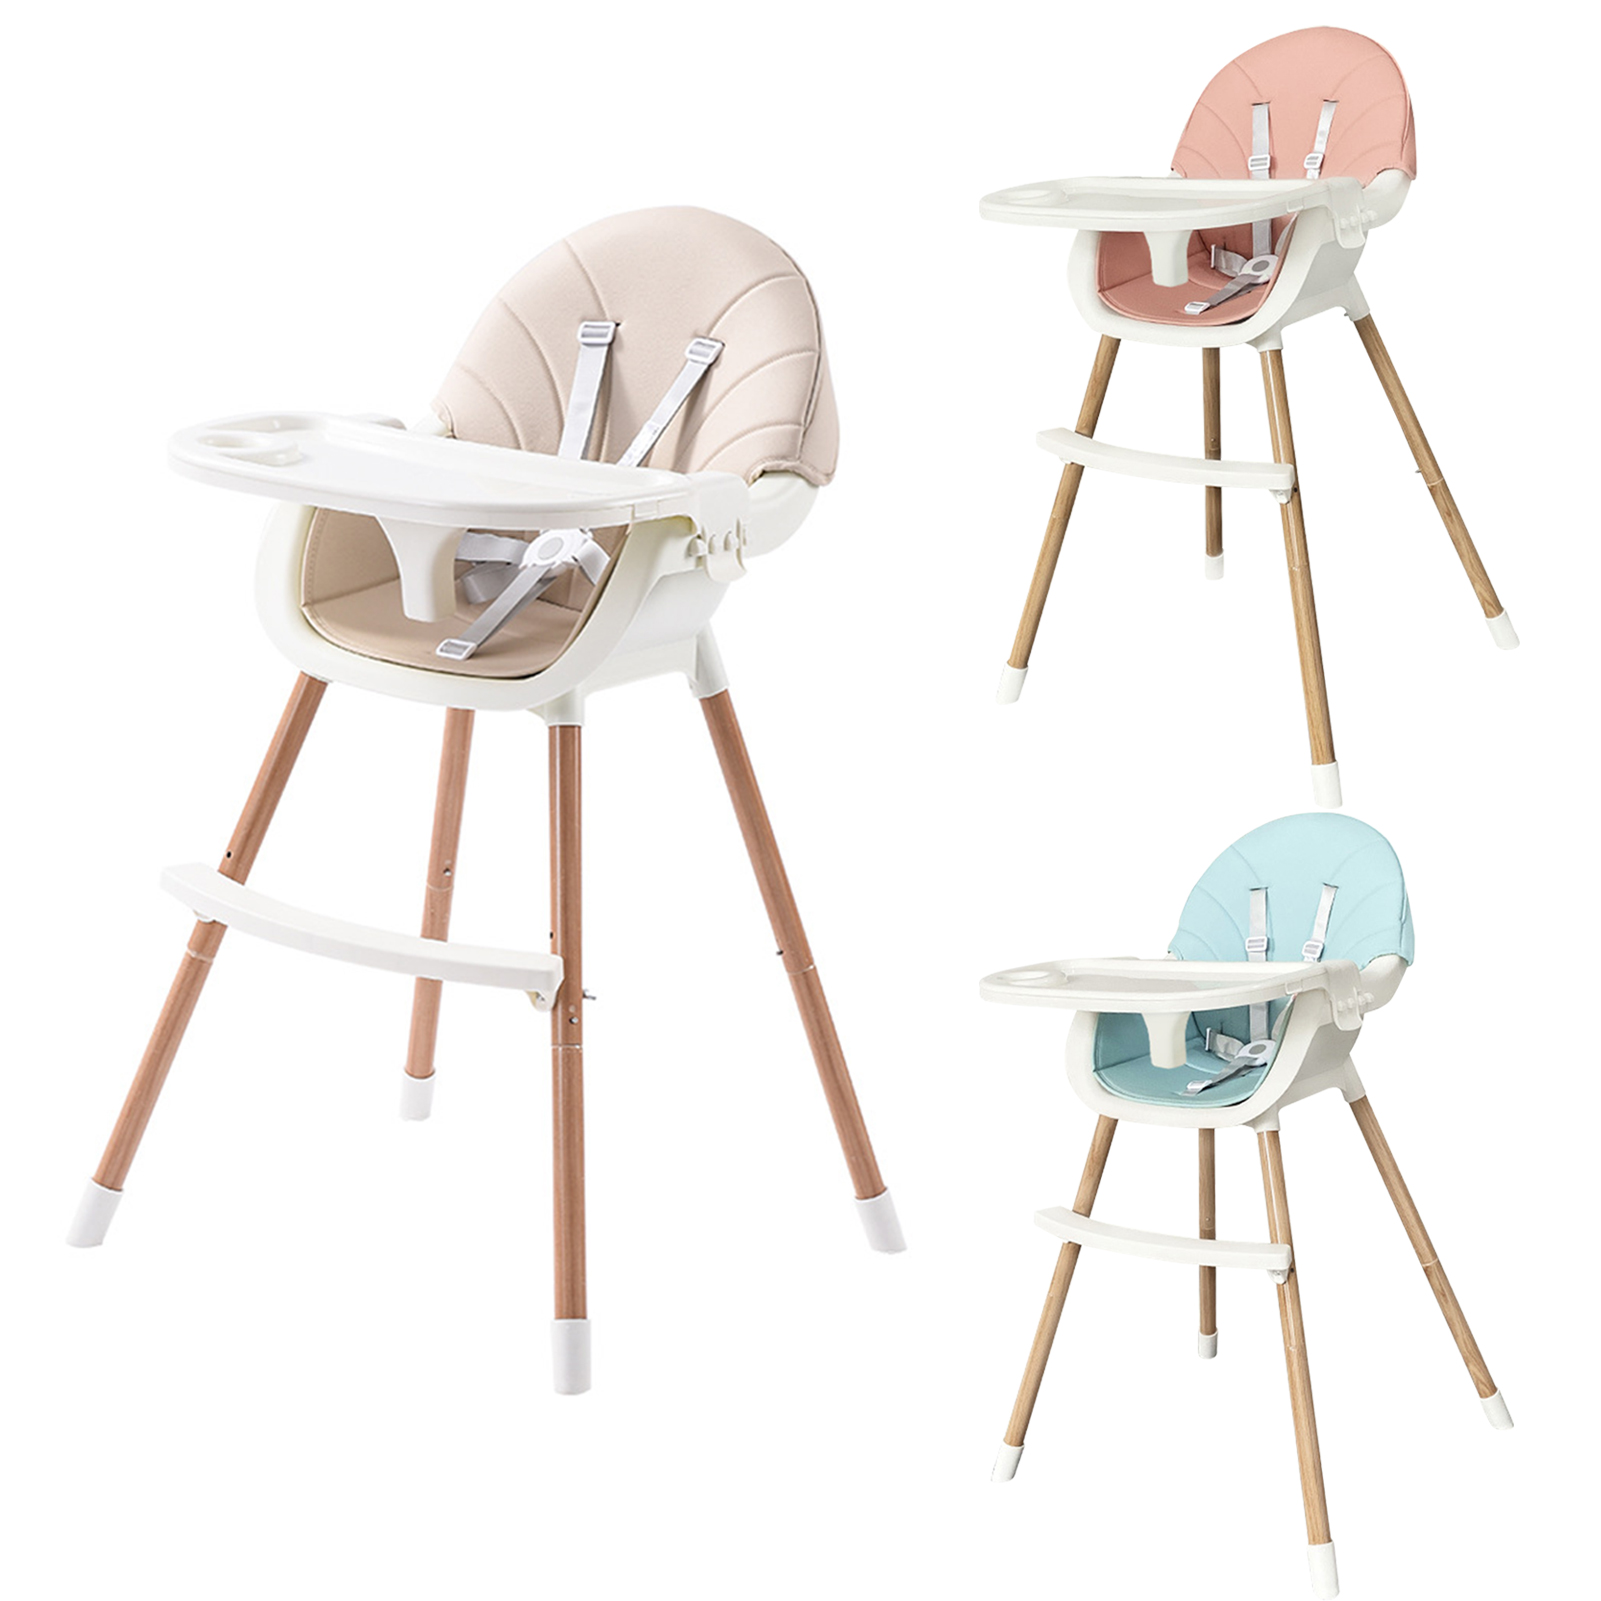 Multifunctional Foldable Portable Large Baby Chair Dining Table And Chair Seat